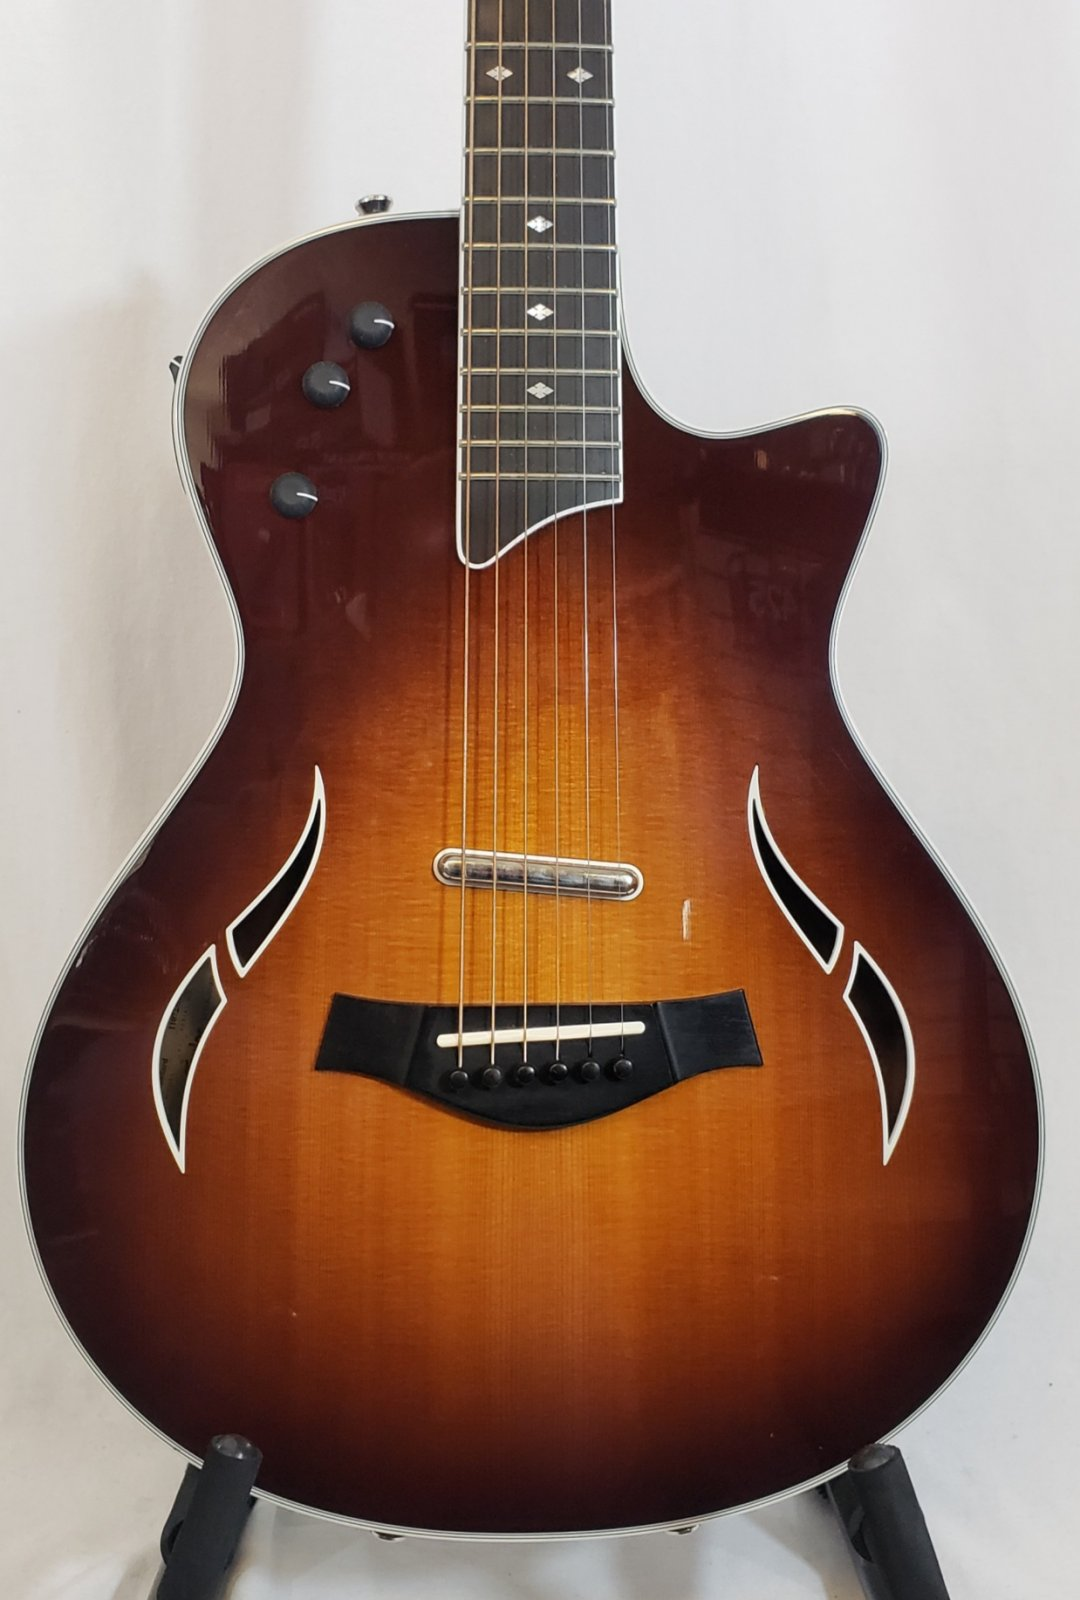 TAYLOR T5z ELECTRIC GUITAR WITH CASE